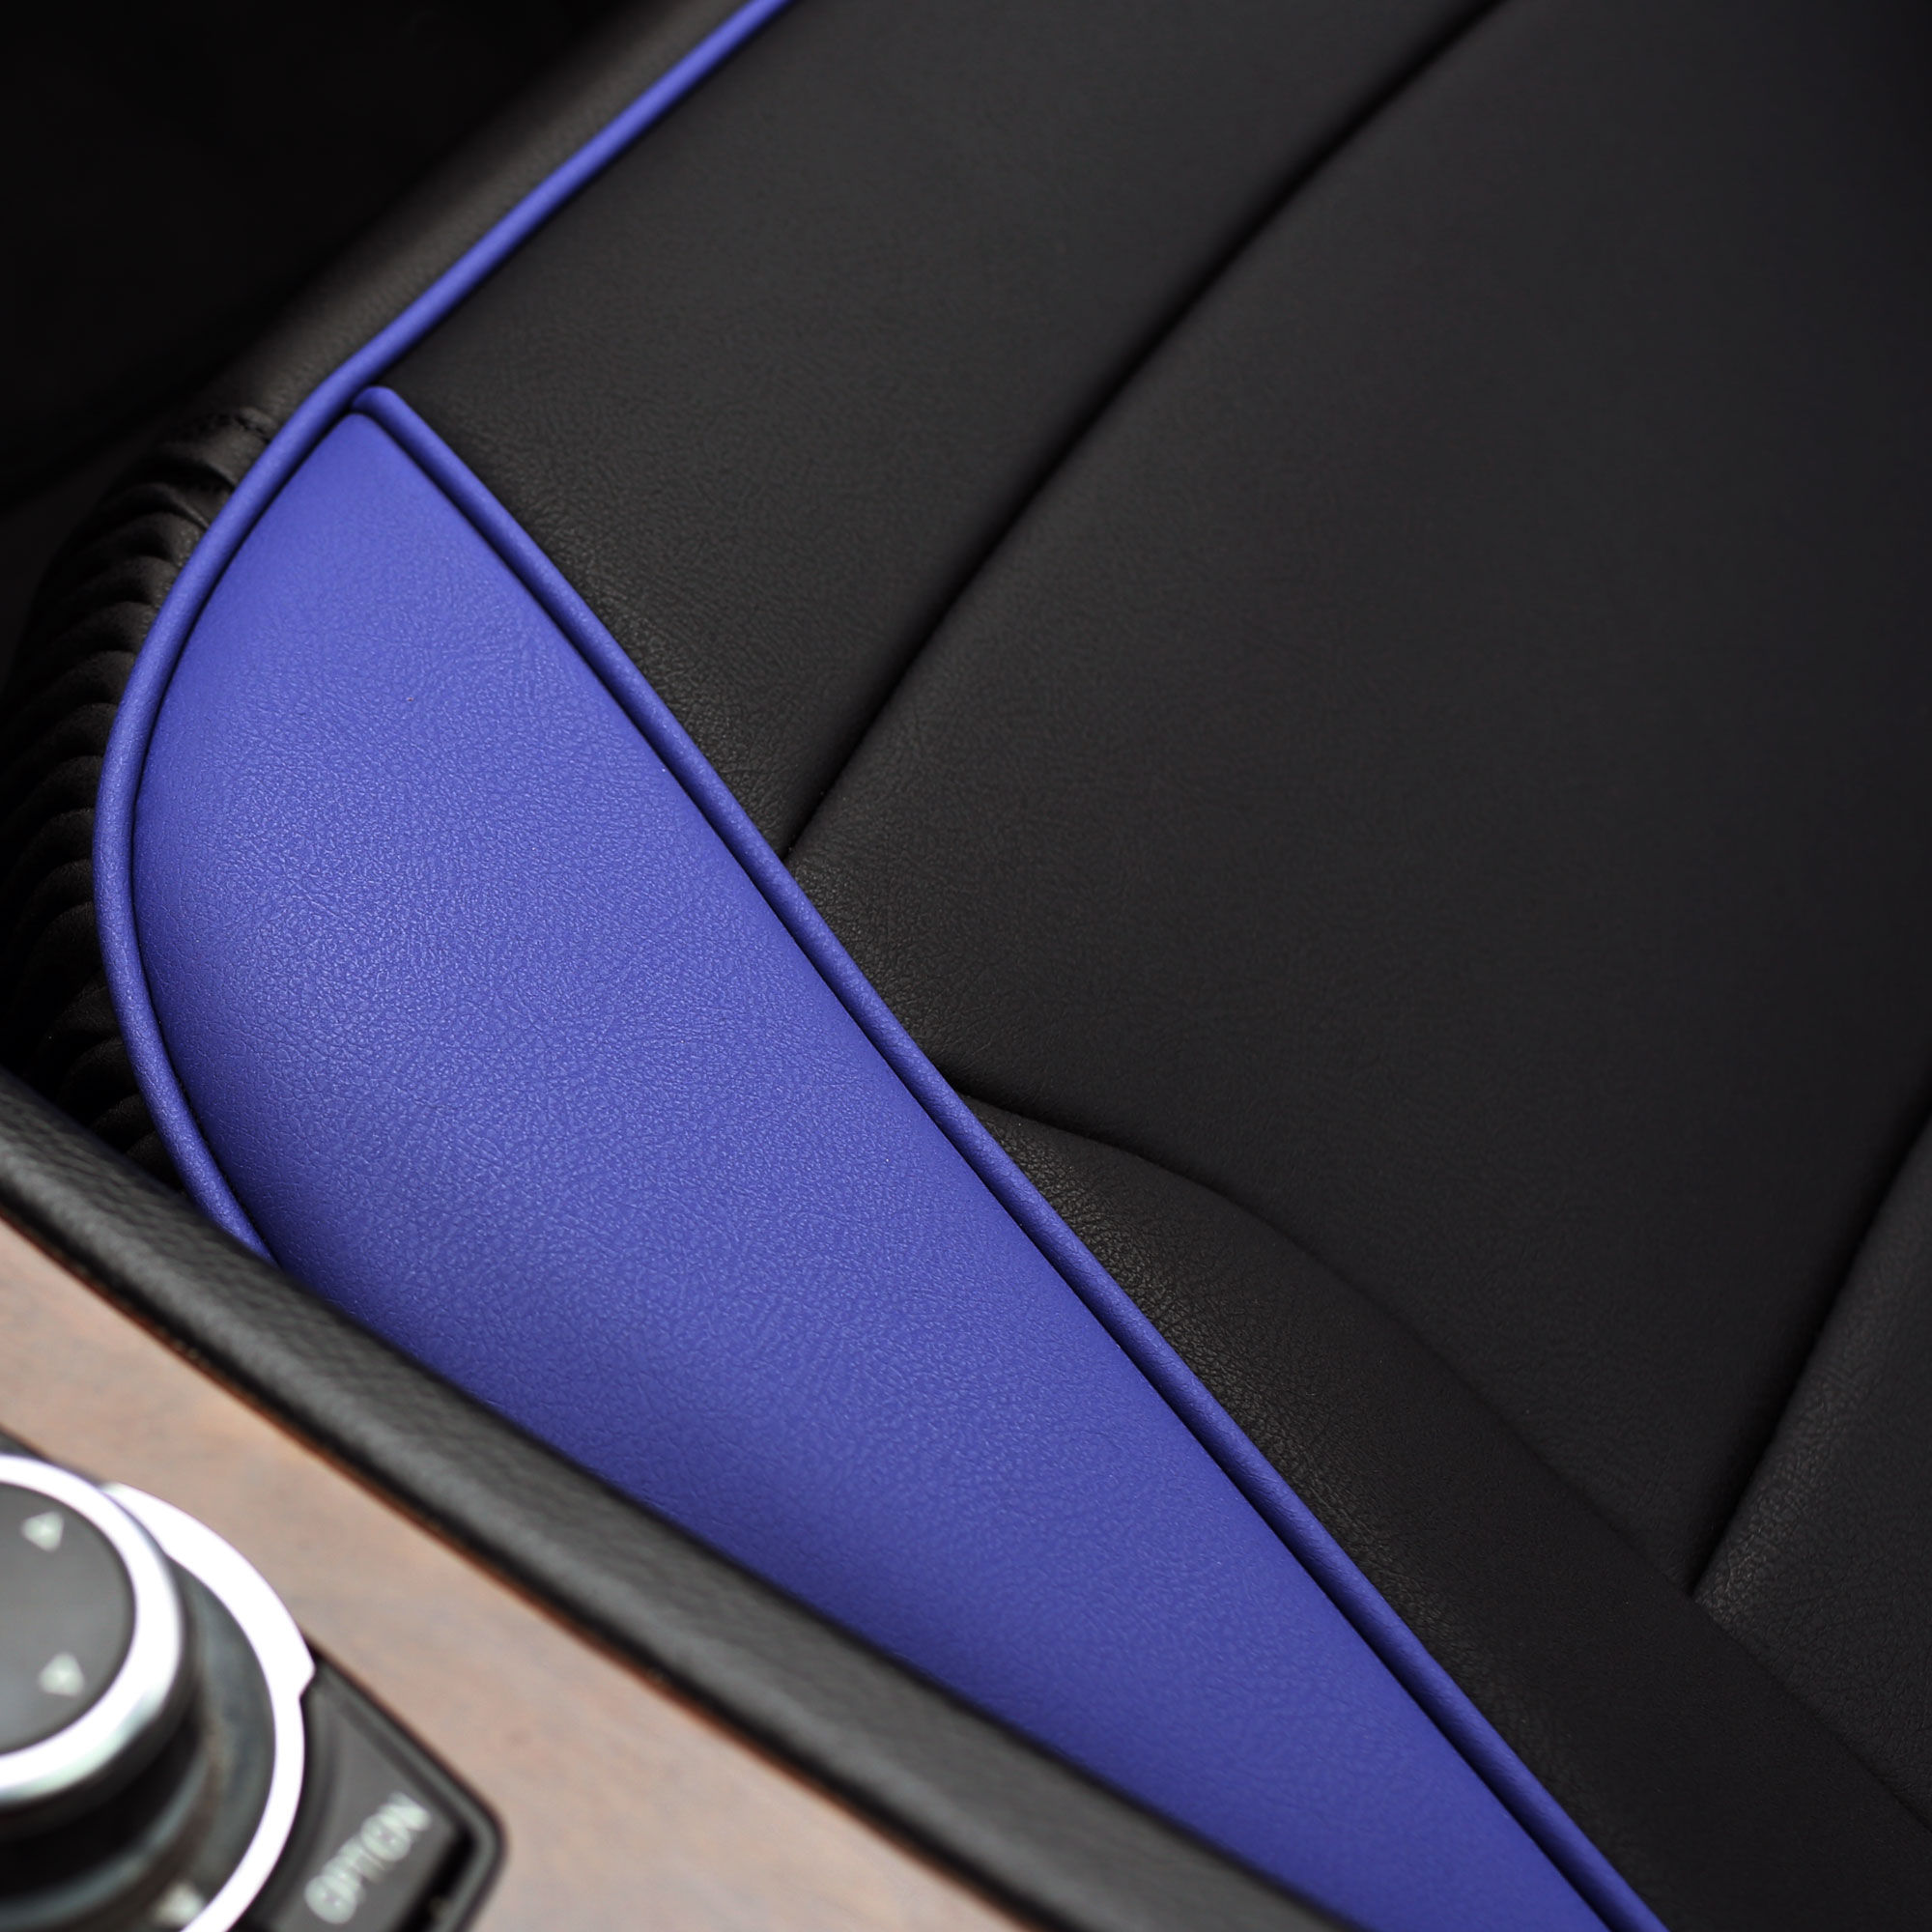 Luxury-Leather-Seat-Cushion-Covers-Front-Bucket-Pair-11-Color-Options thumbnail 22